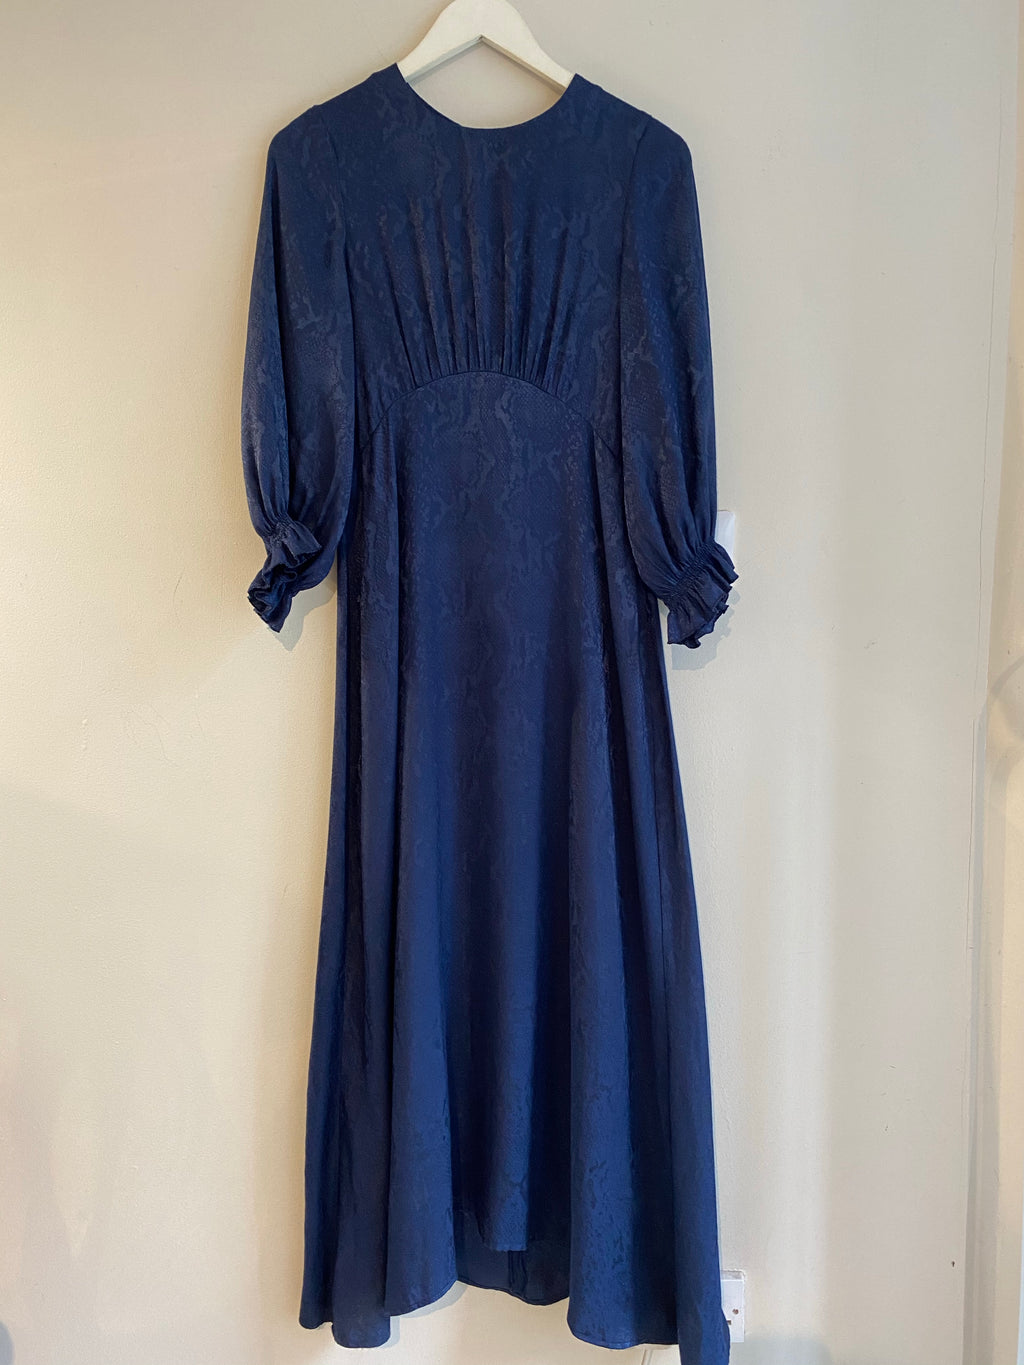 Vilagallo Kara Dress - Navy